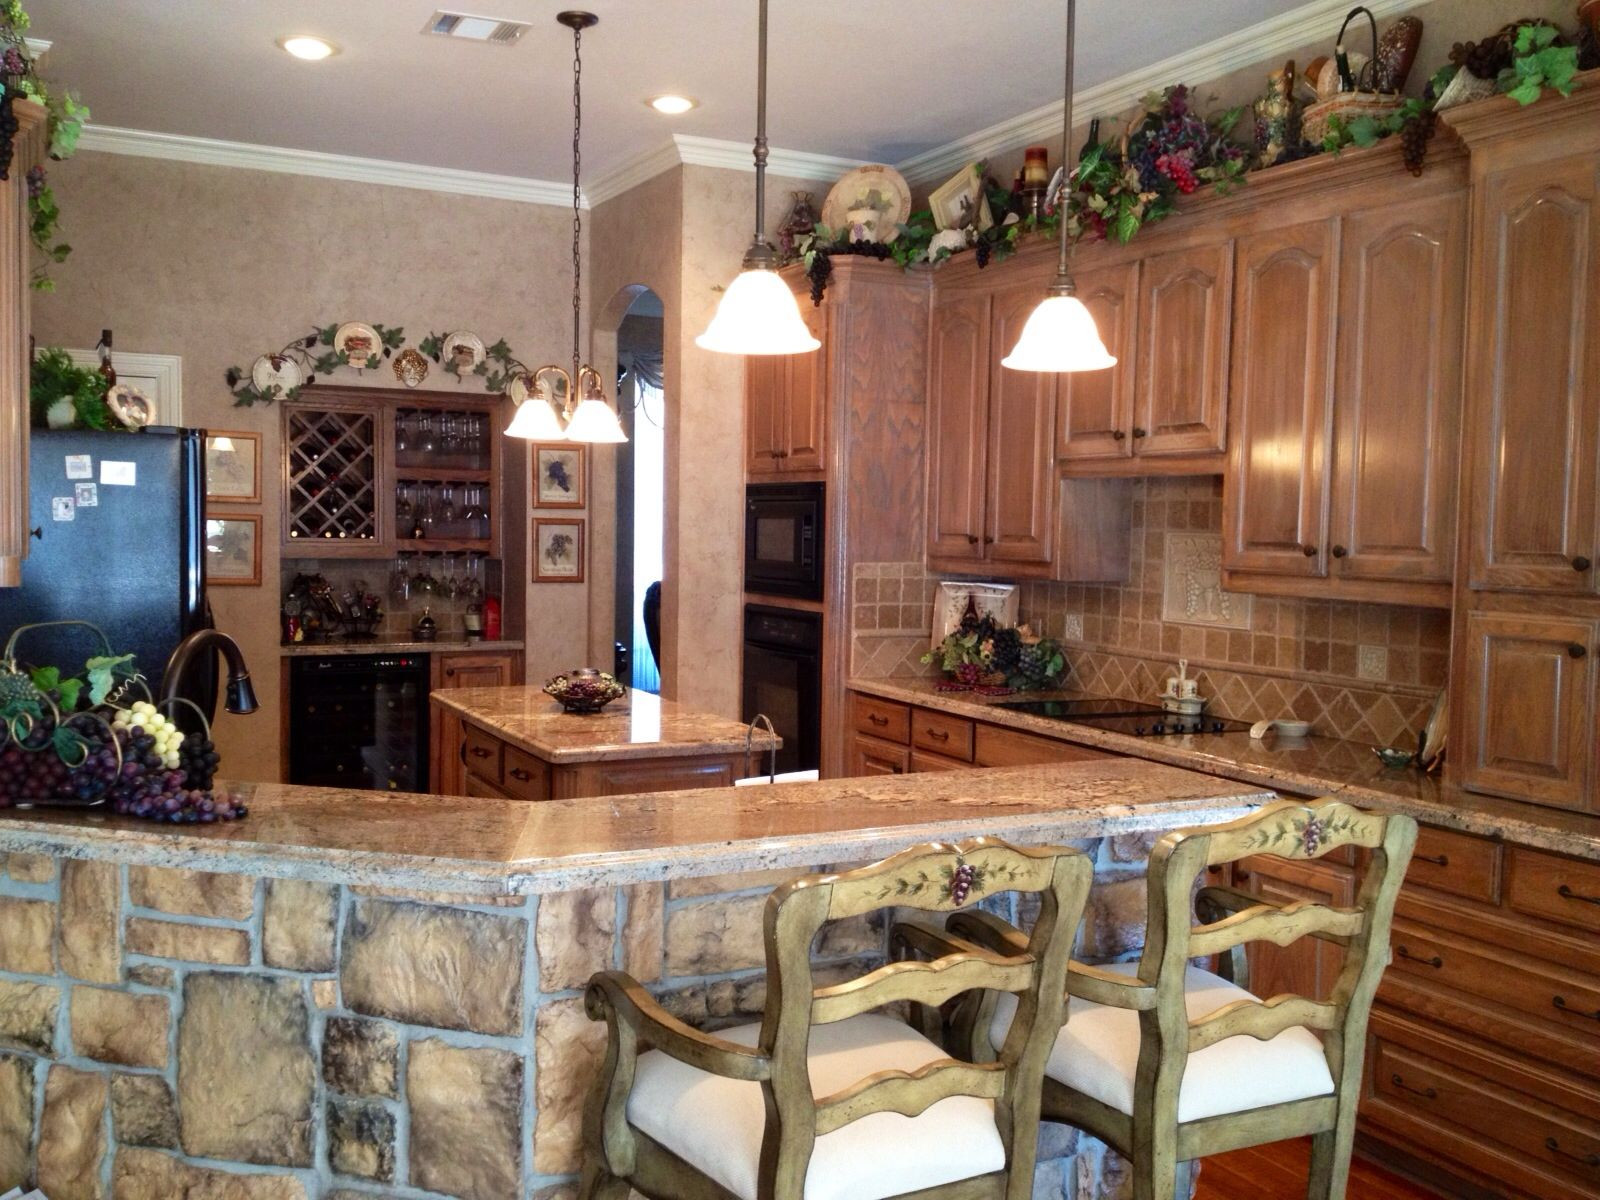 Best ideas about Vineyard Kitchen Decor . Save or Pin wine decorations for kitchen – Roselawnlutheran Now.